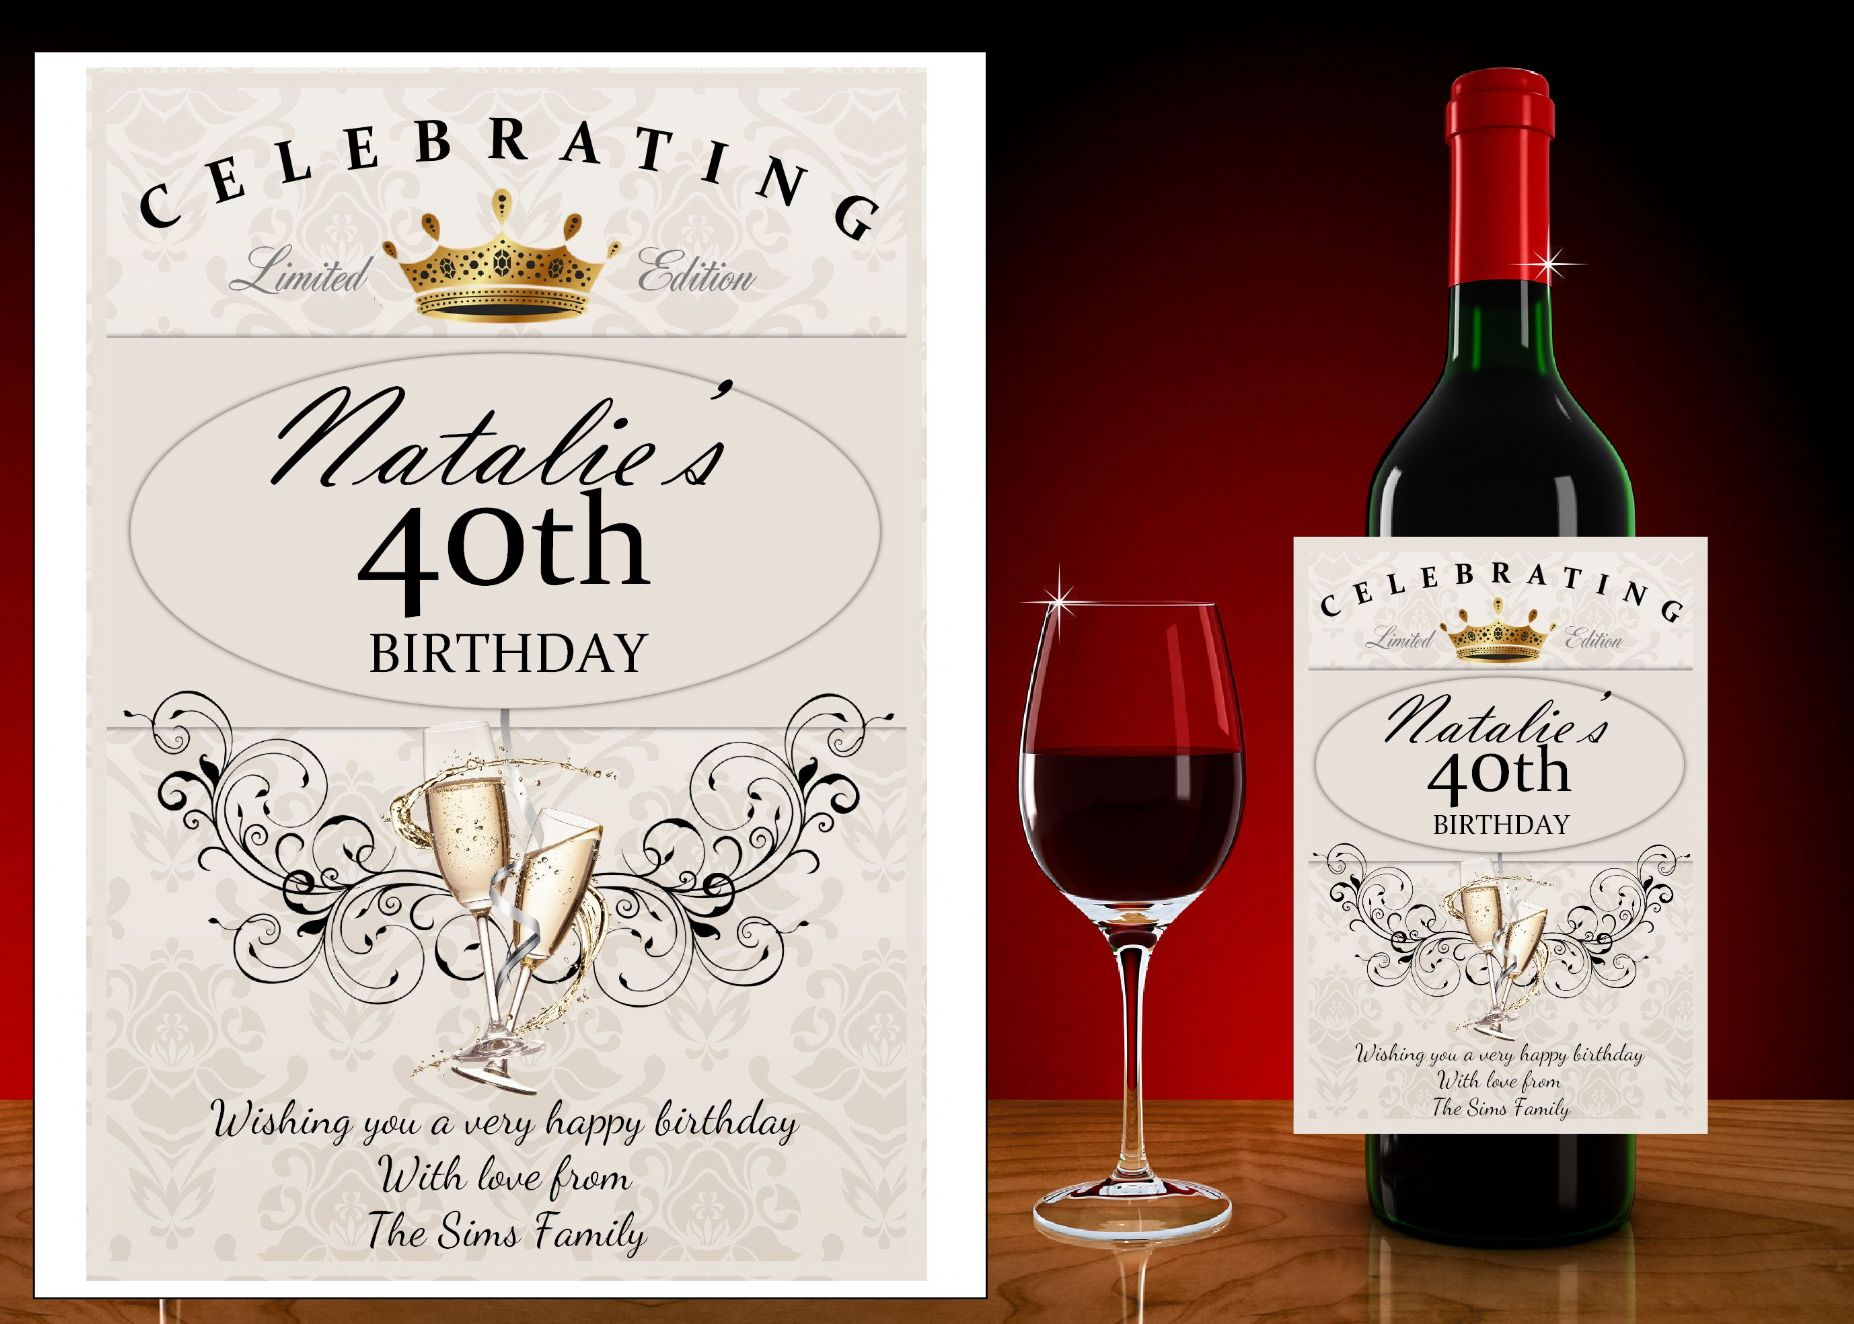 bottle of wine for birthday ; personalised-happy-birthday-wine-champagne-bottle-label-gift-idea-n64-bottle-label-size-champagne-bottle-9cm-h-x-13cm-w-14026-p